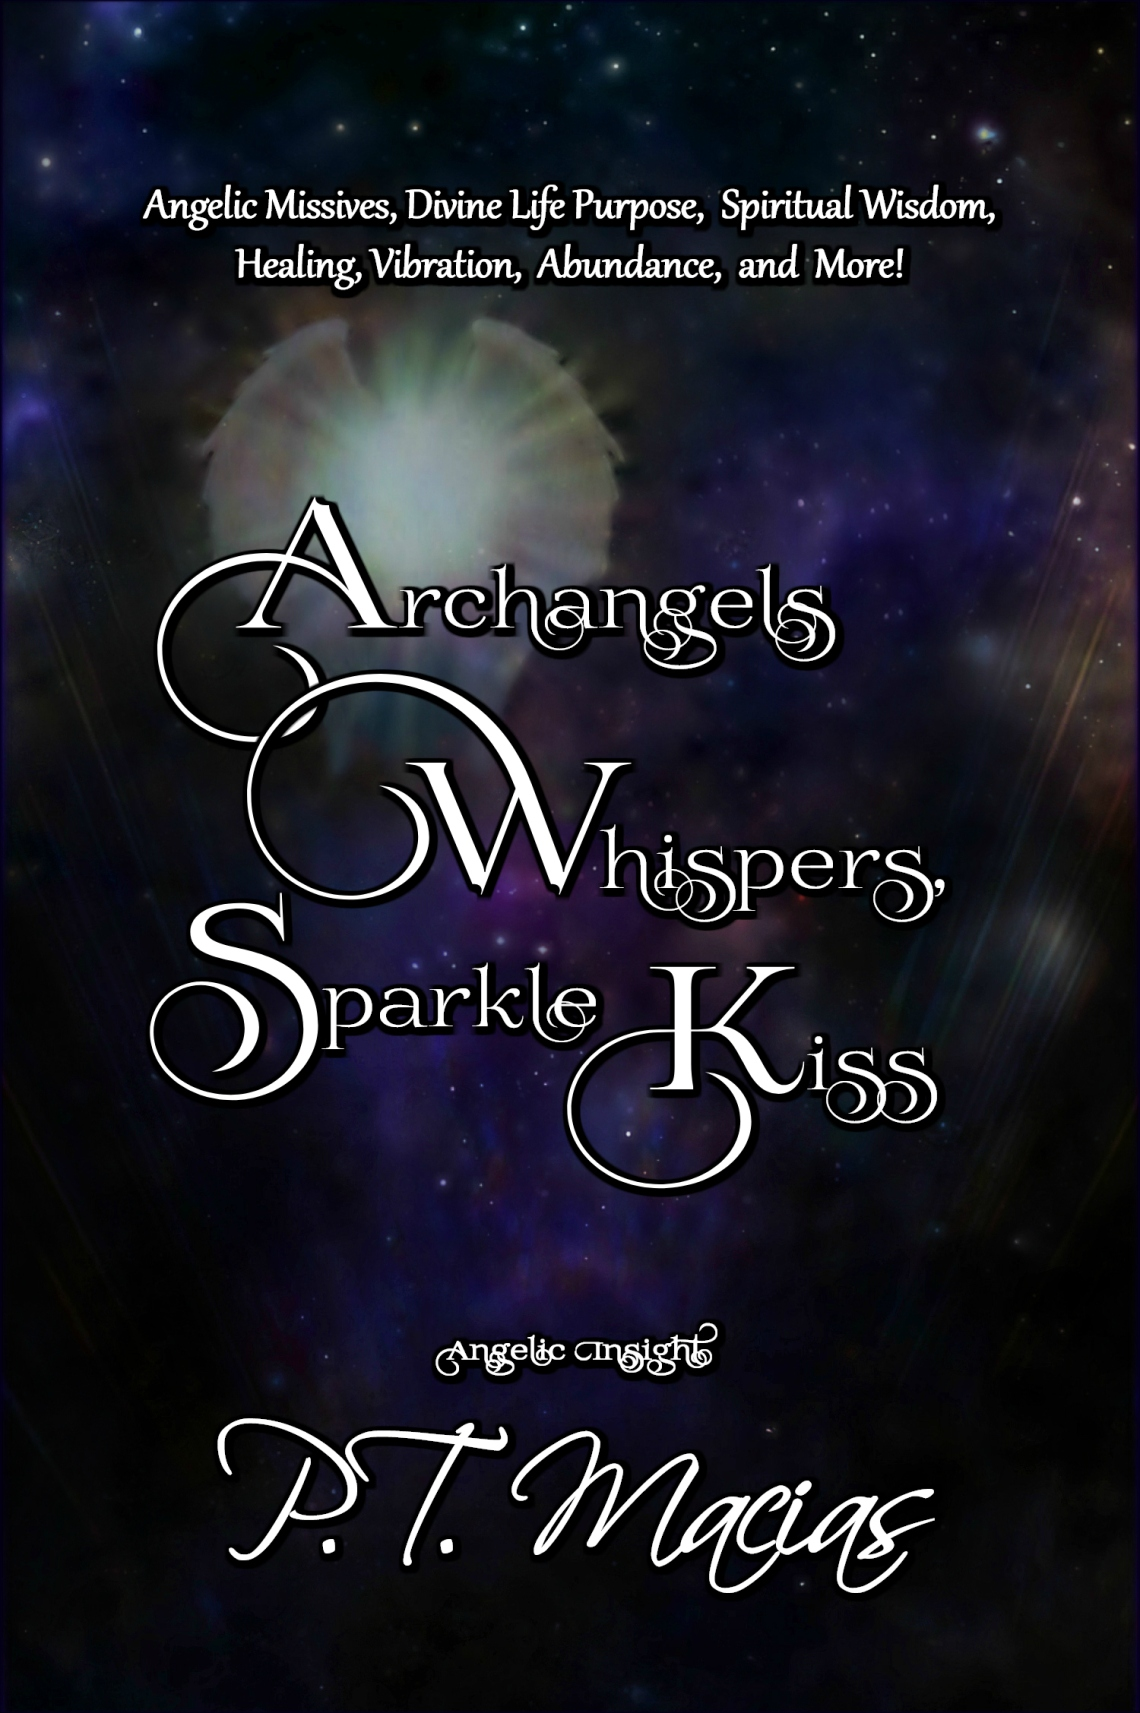 Archangels Whispers Sparkle Kiss5x8.jpg